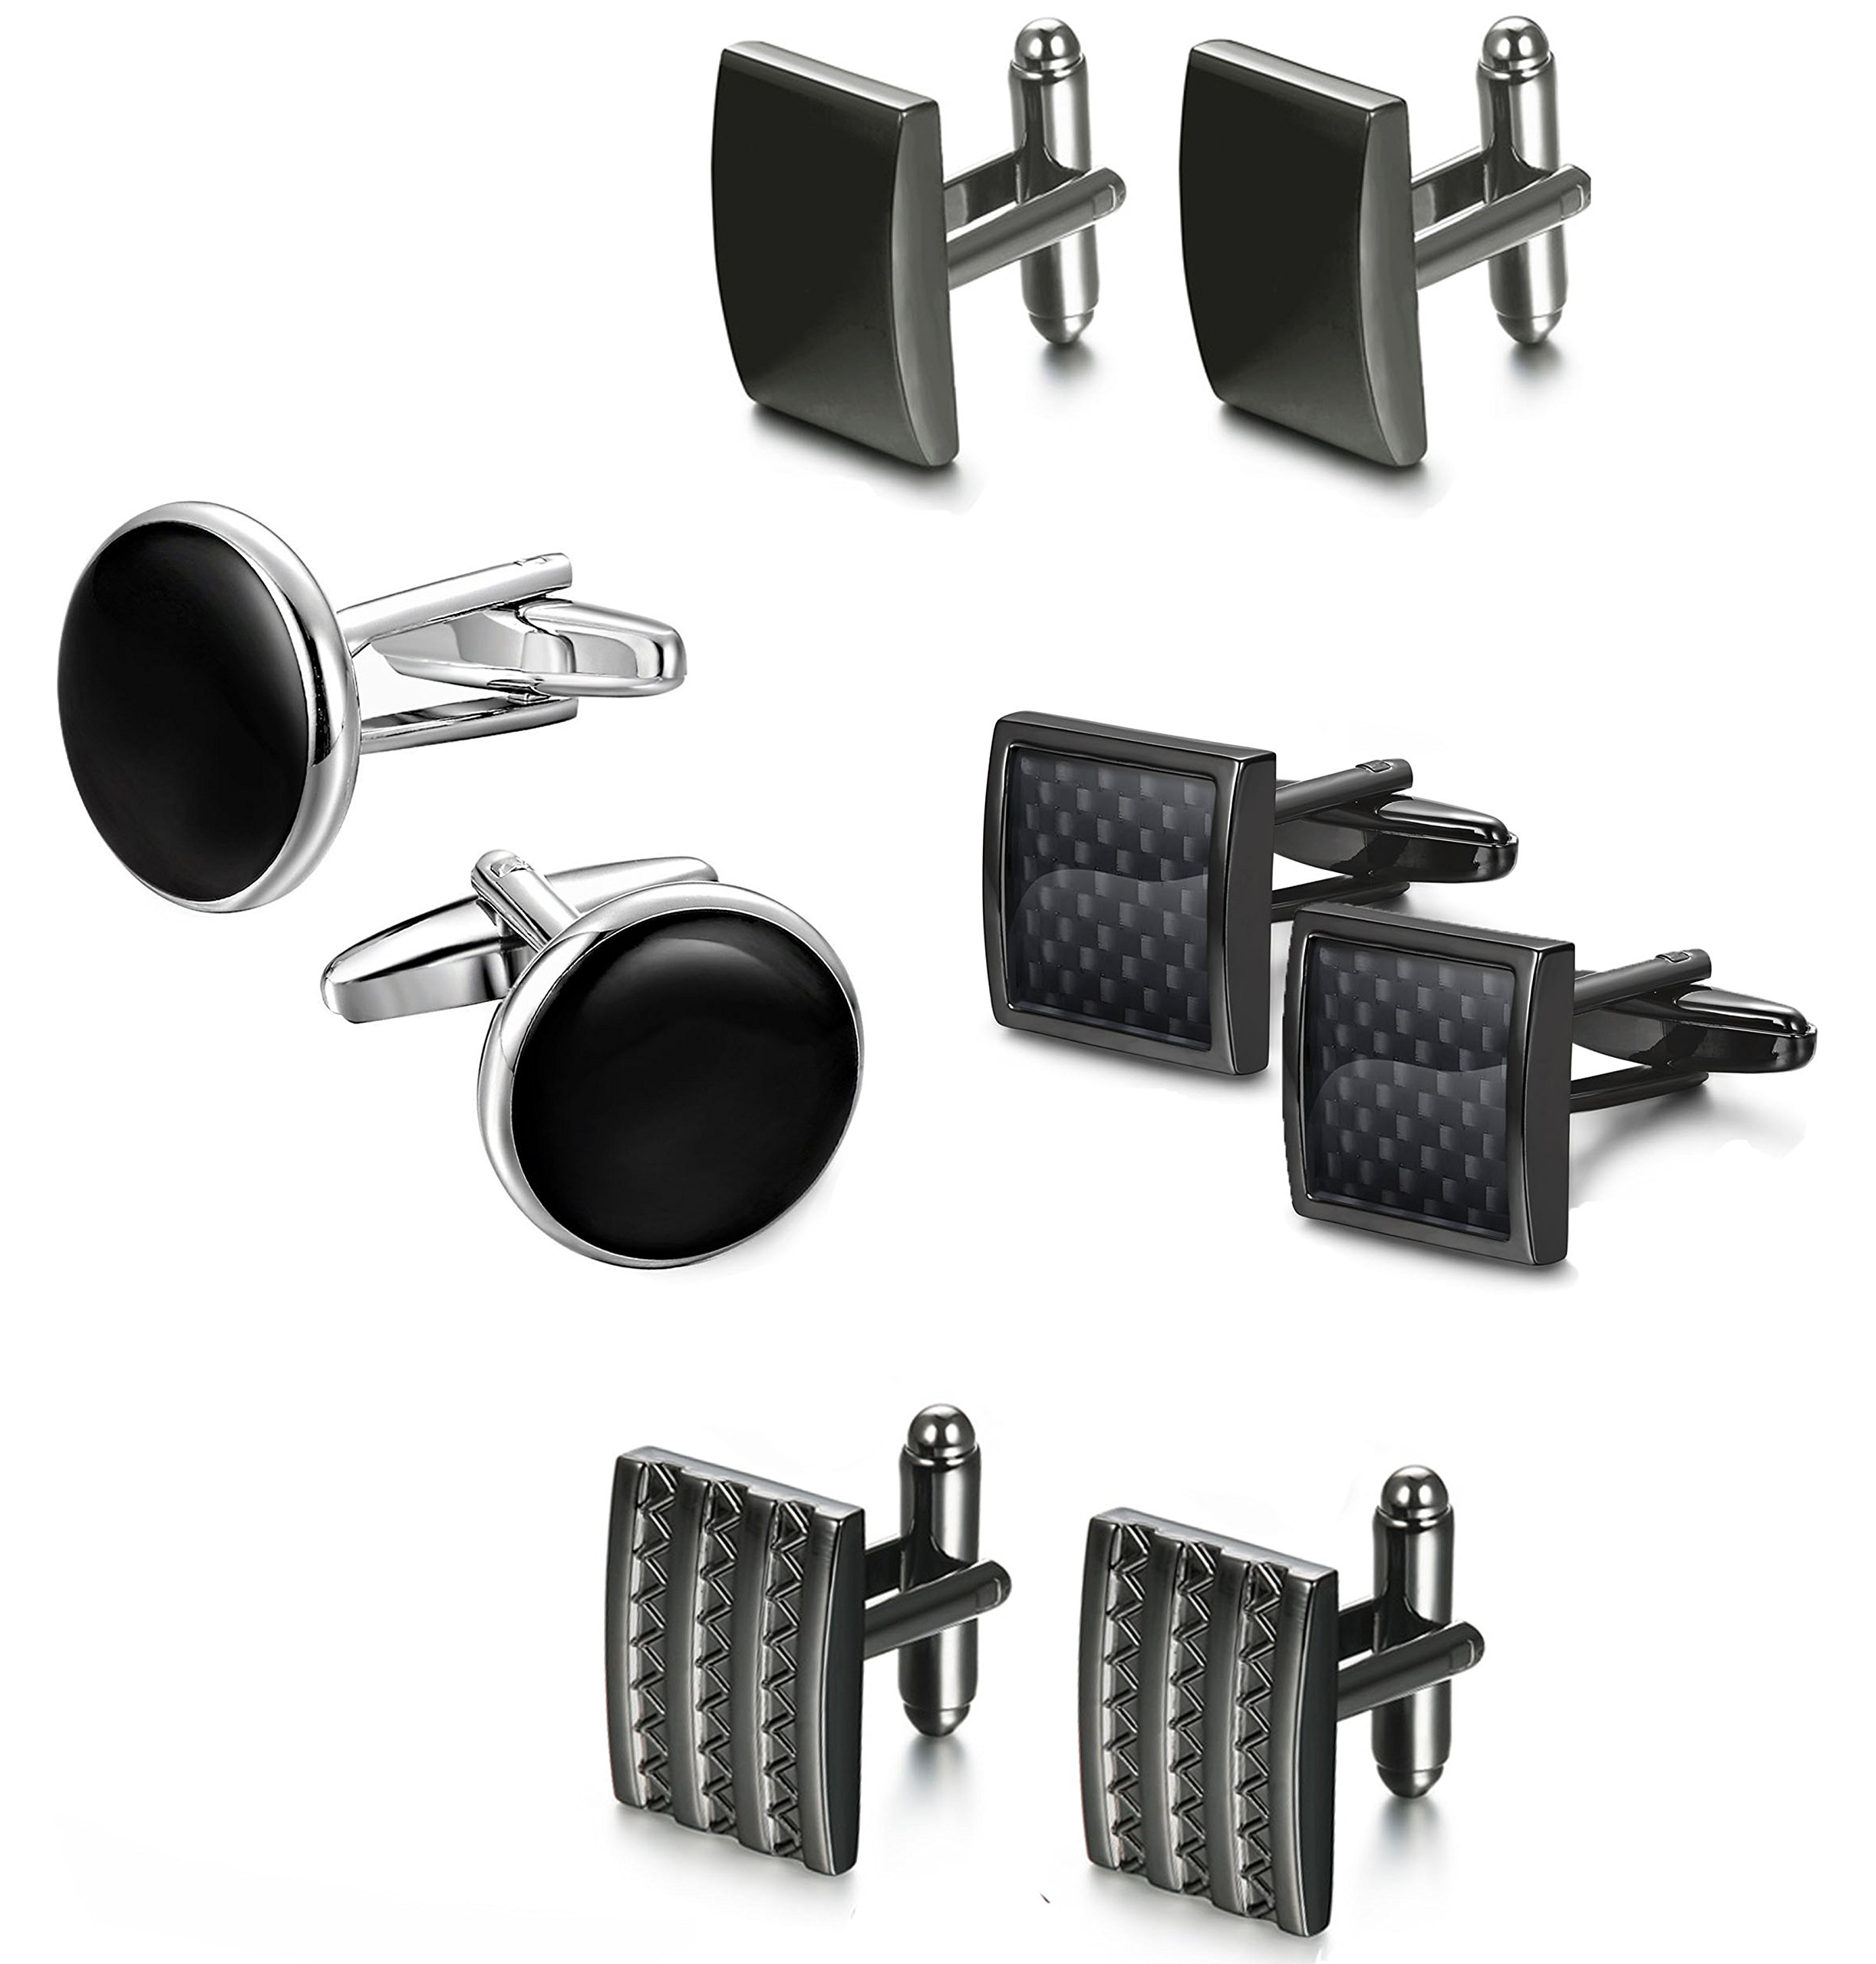 FIBO STEEL Class Cufflinks for Men Black Unique Wedding Cufflink Set Mens Dad Birthday Gifts by FIBO STEEL (Image #2)